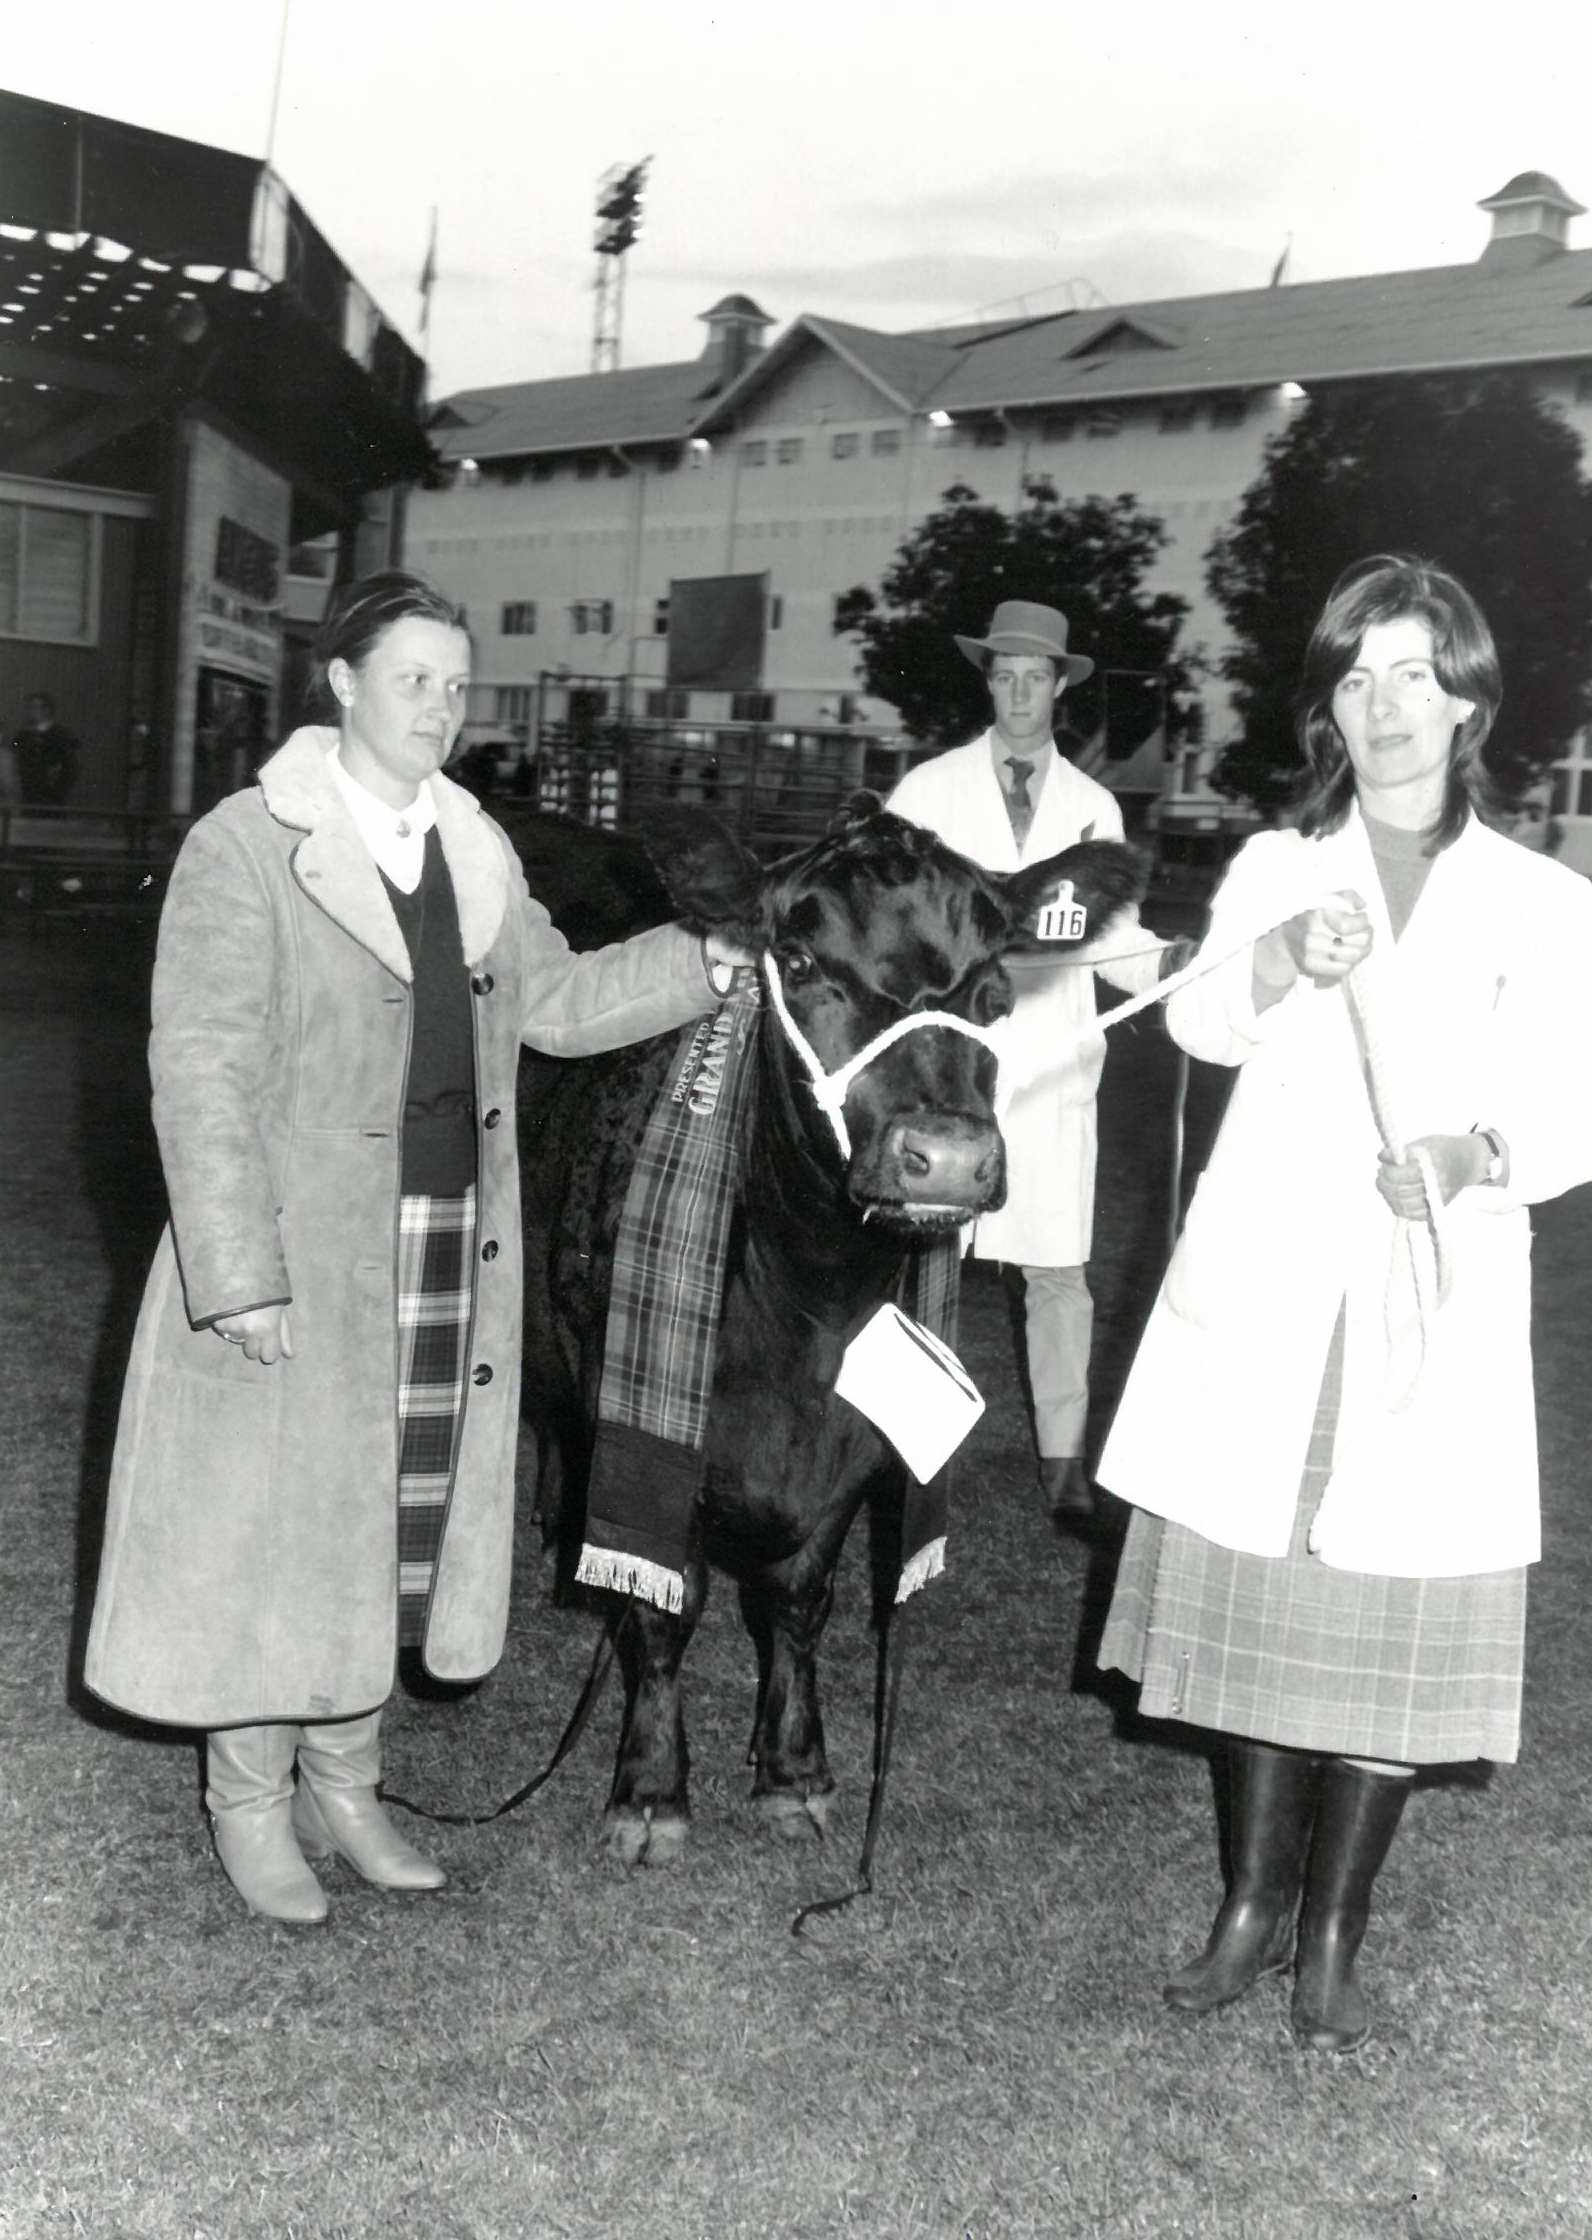 Sally Chappell & Greg Chappell sash the Senior and Grand Champion Angus female Glen Bold Adelaide A16 paraded by Sally Lyons at the 1985 Royal Adelaide